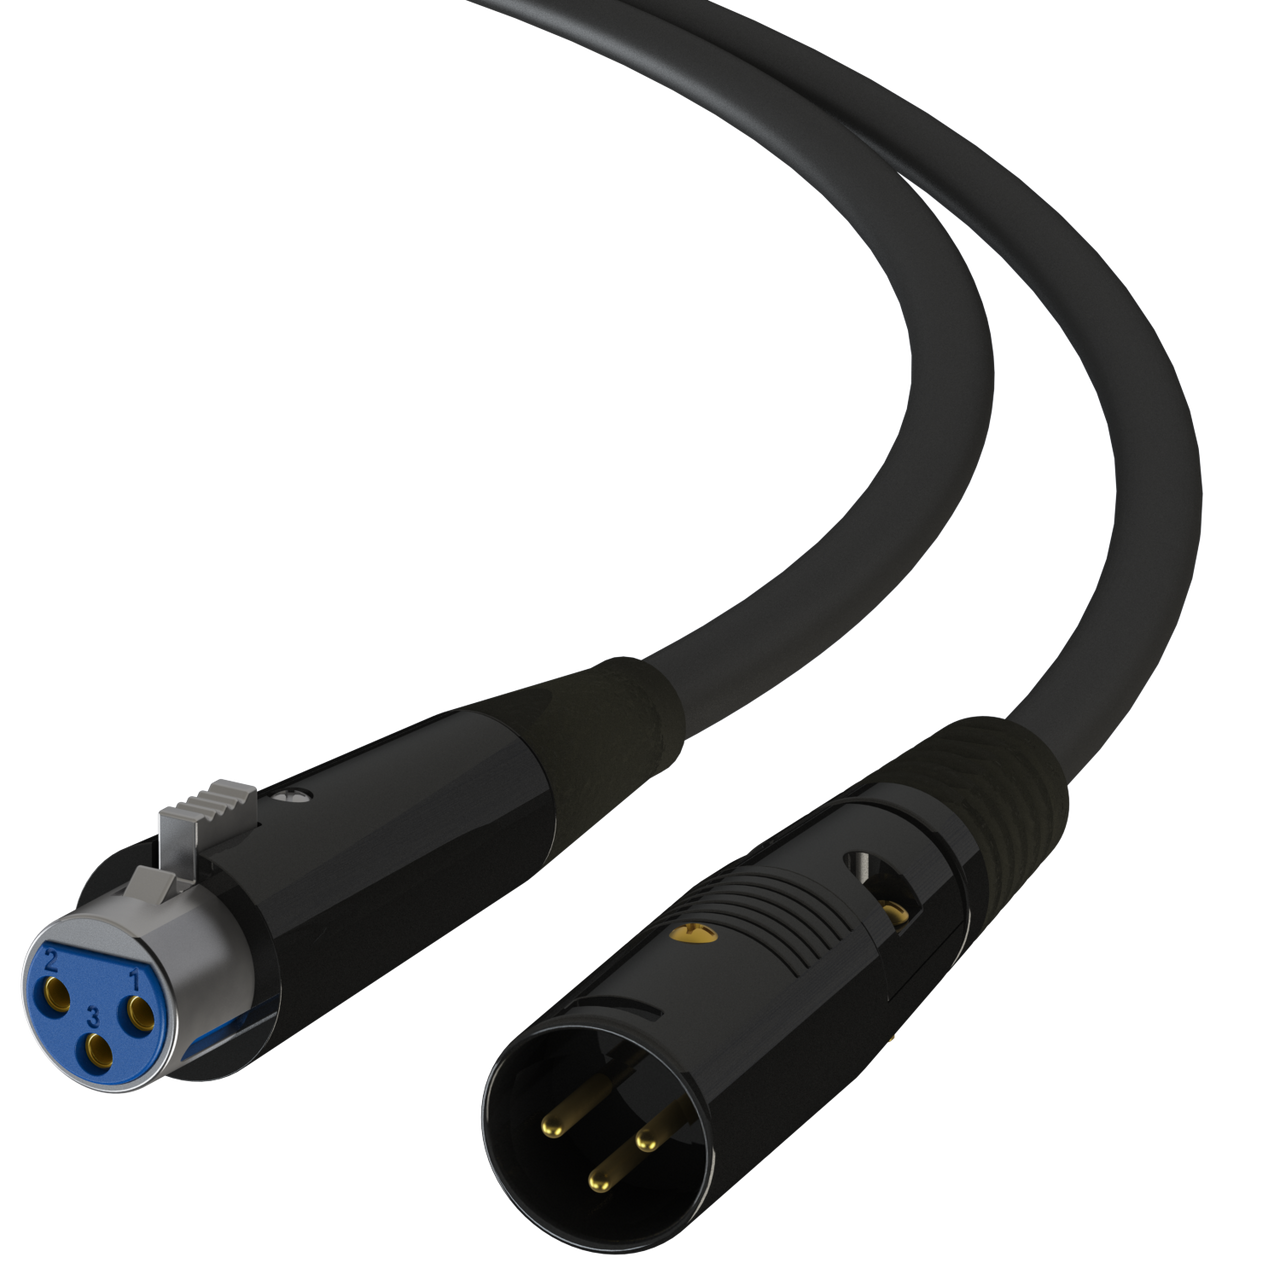 XLR Male to Female Pro-Audio Balanced Cable for Microphone /& Interconnect Cord